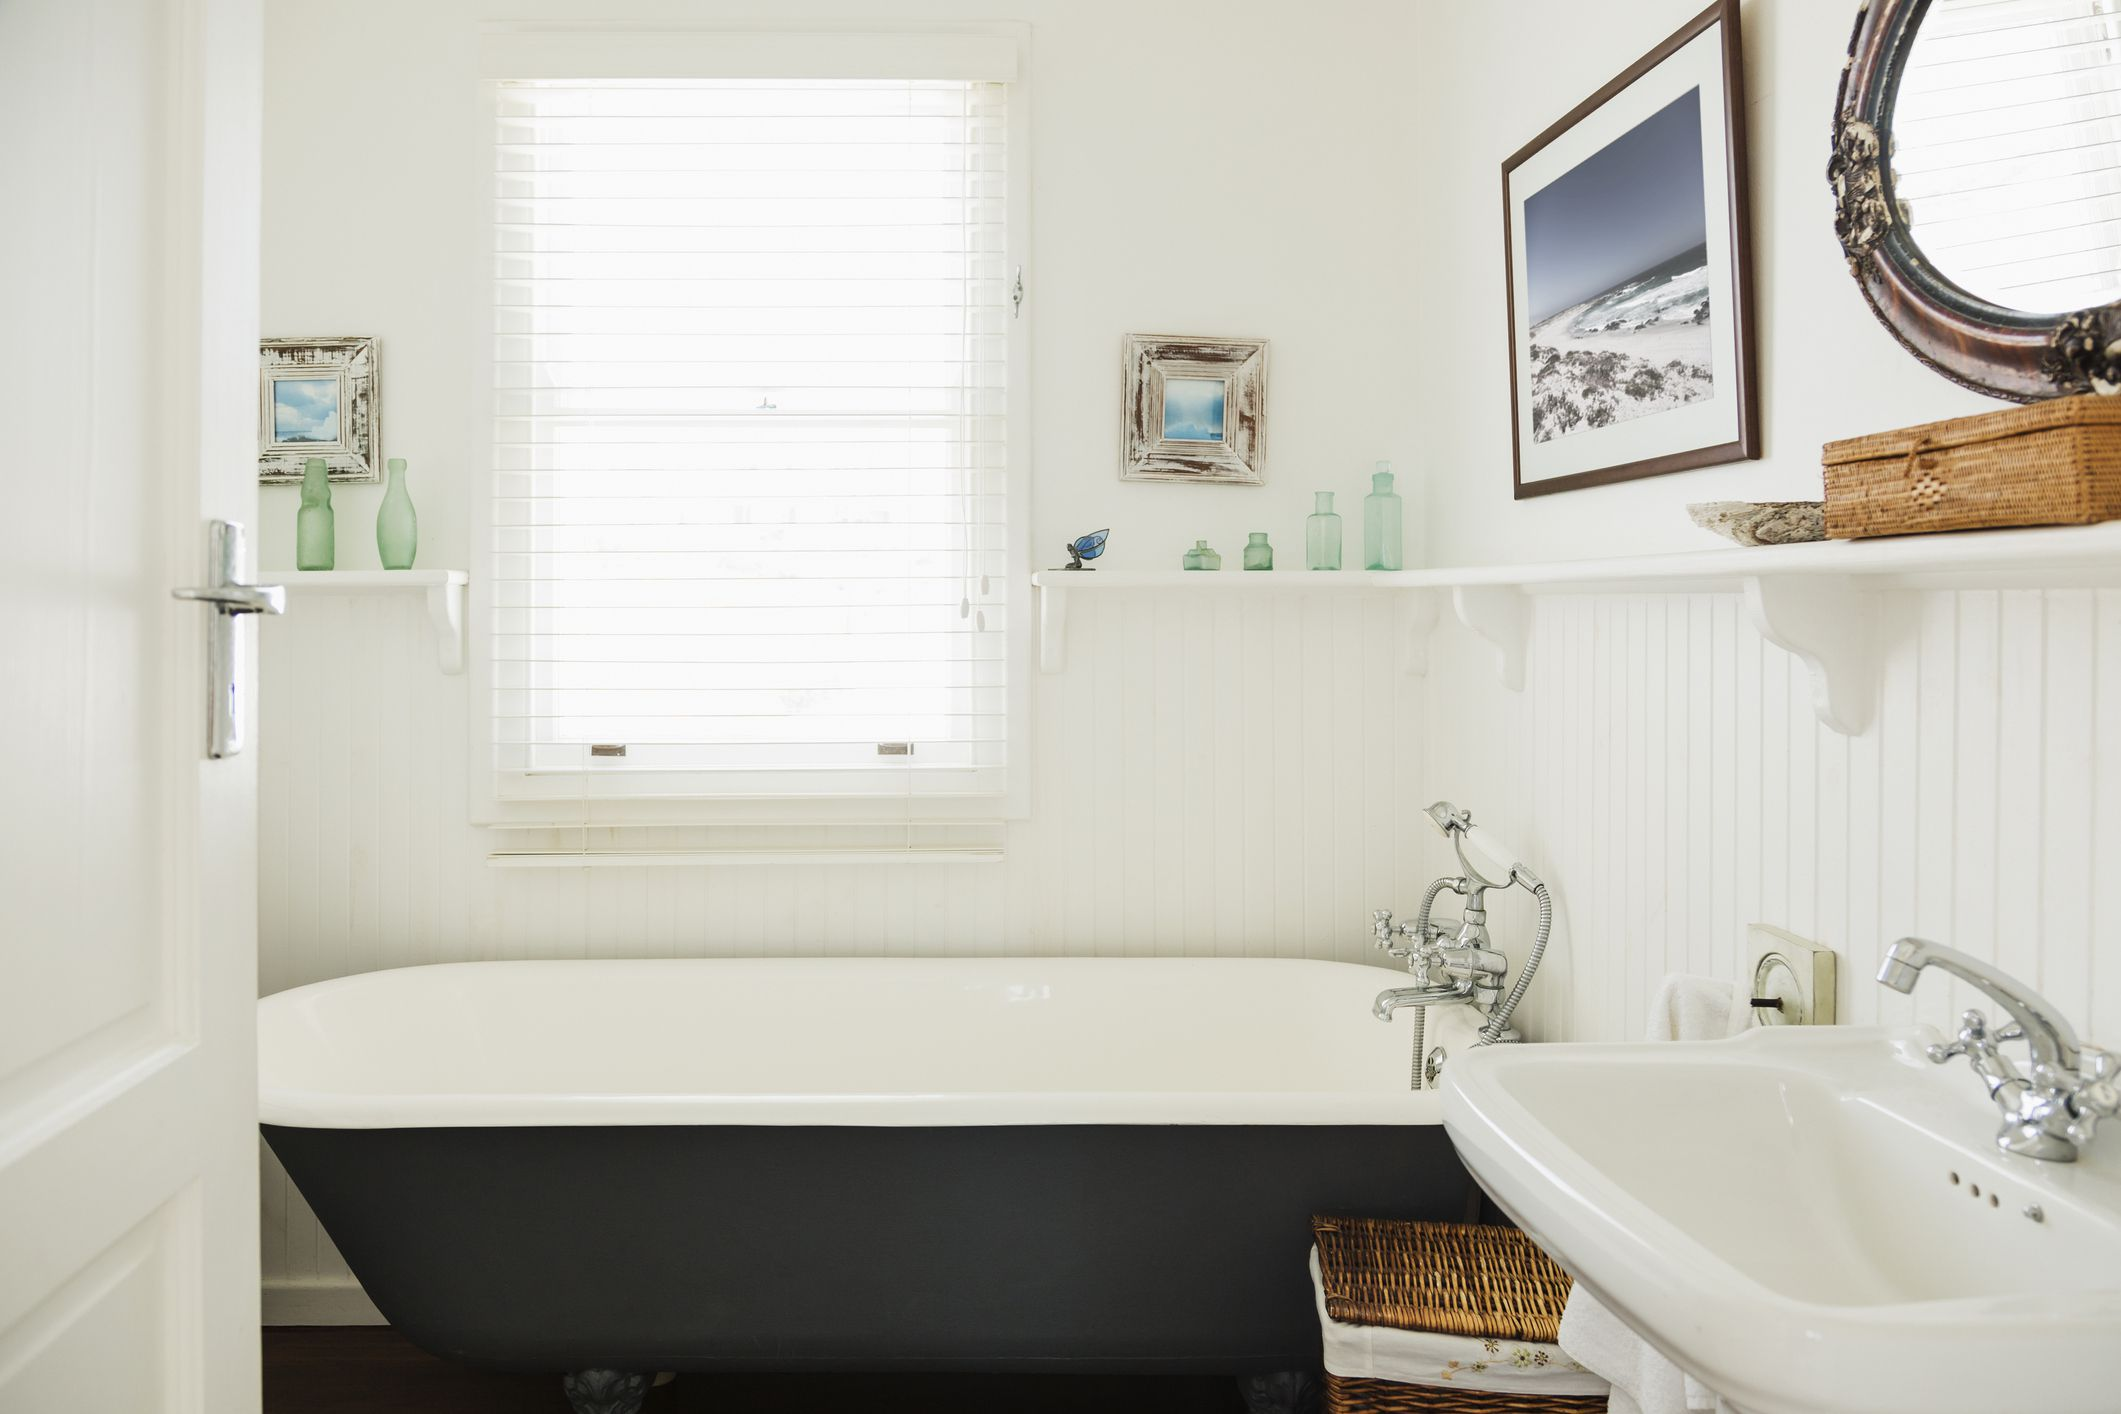 5 feng shui tips for a kitchen facing the bathroom how to fix the bad feng shui of a bathroom facing the front door rubansaba